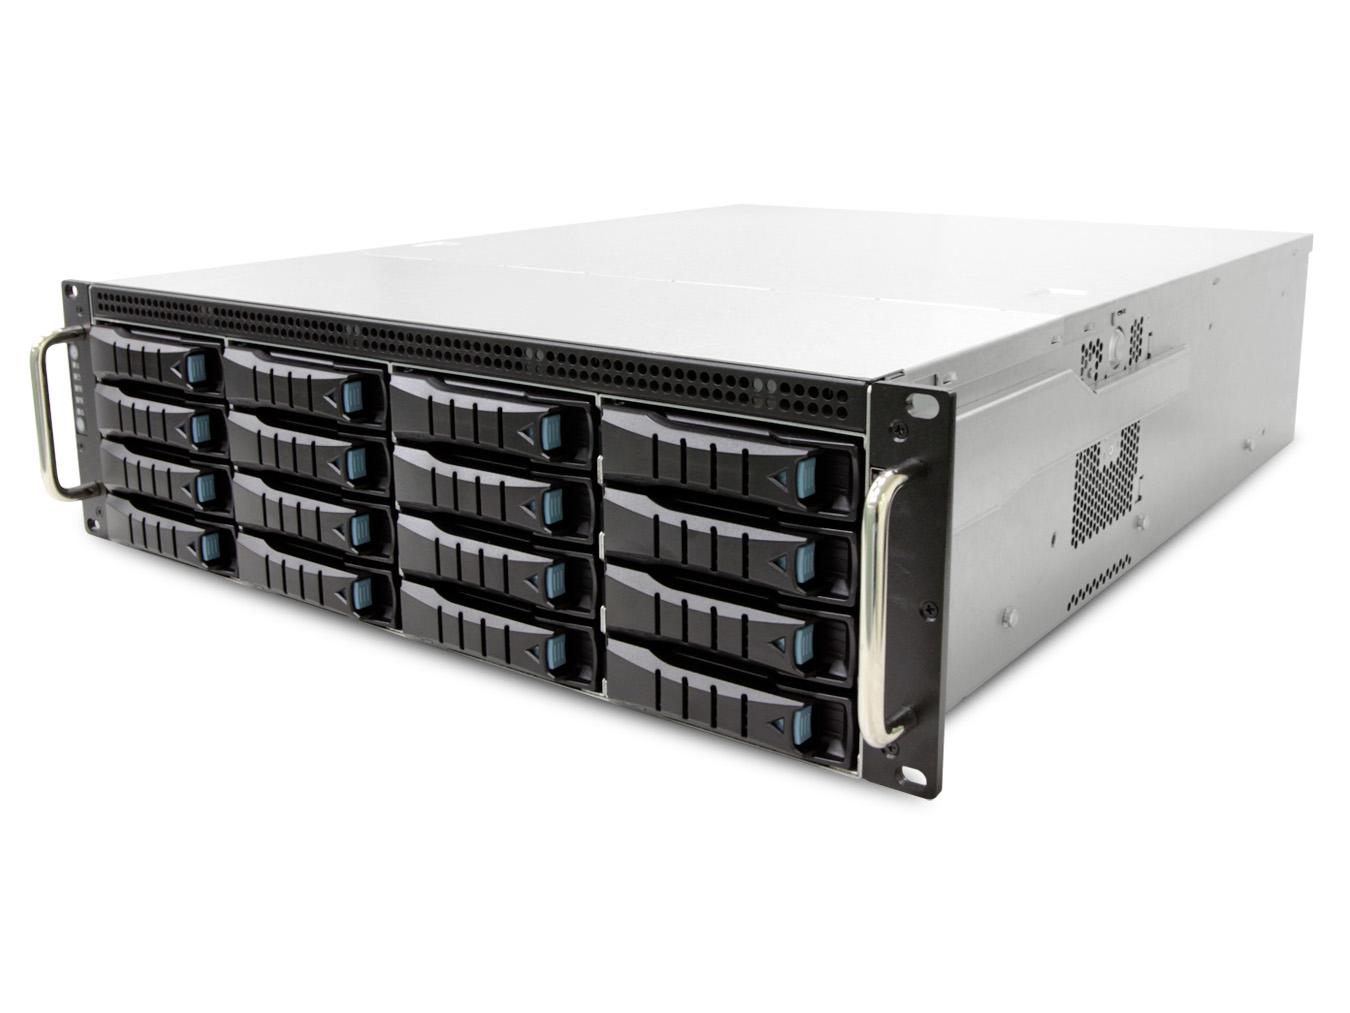 AIC RSC-3ETS XE1-3ETS0-02 3U 16-bay Storage Server Chassis